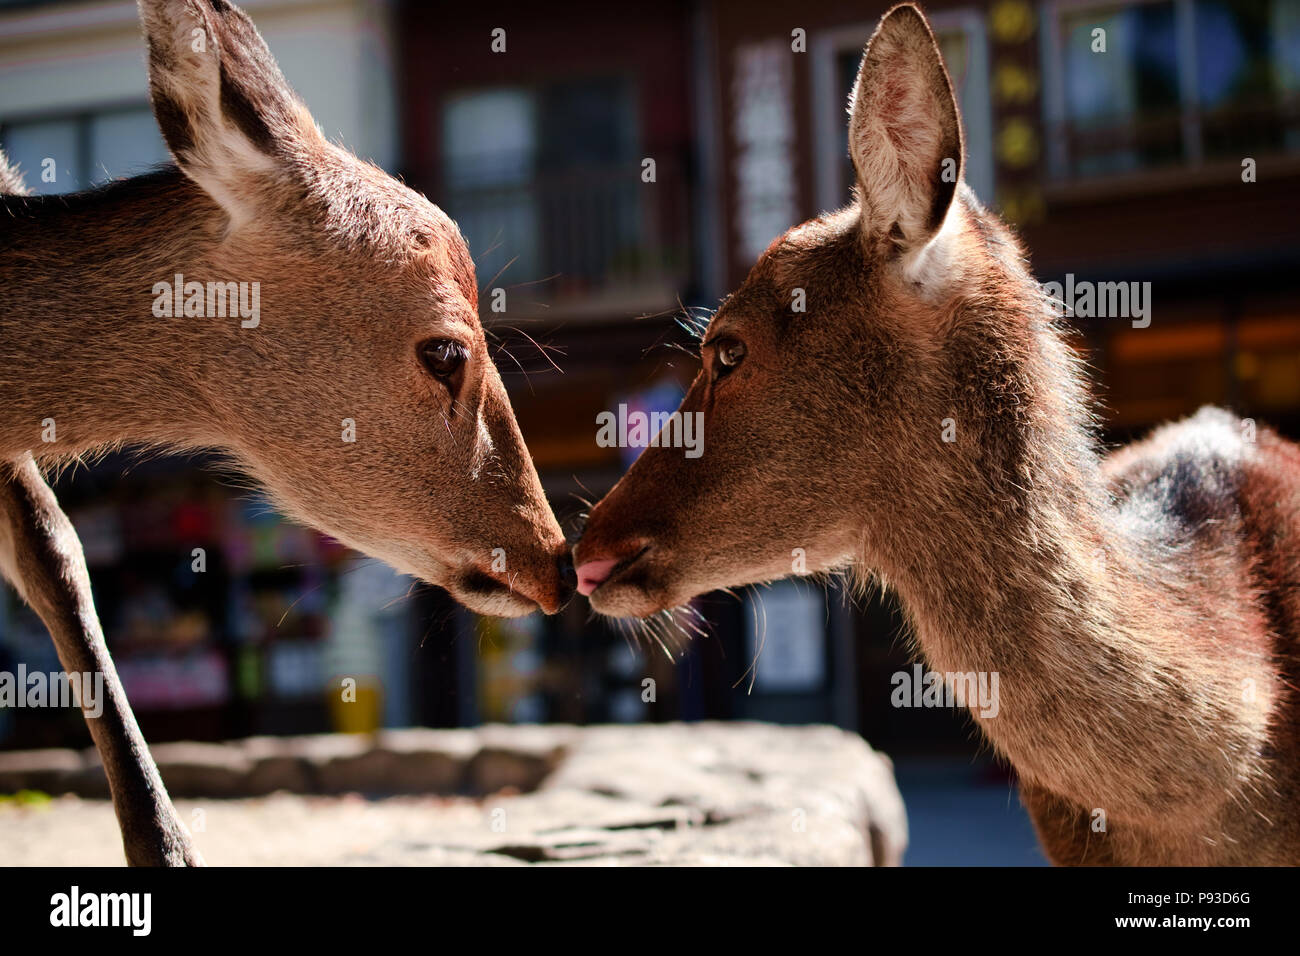 deer were begging and playing in nara park, kyoto - Stock Image